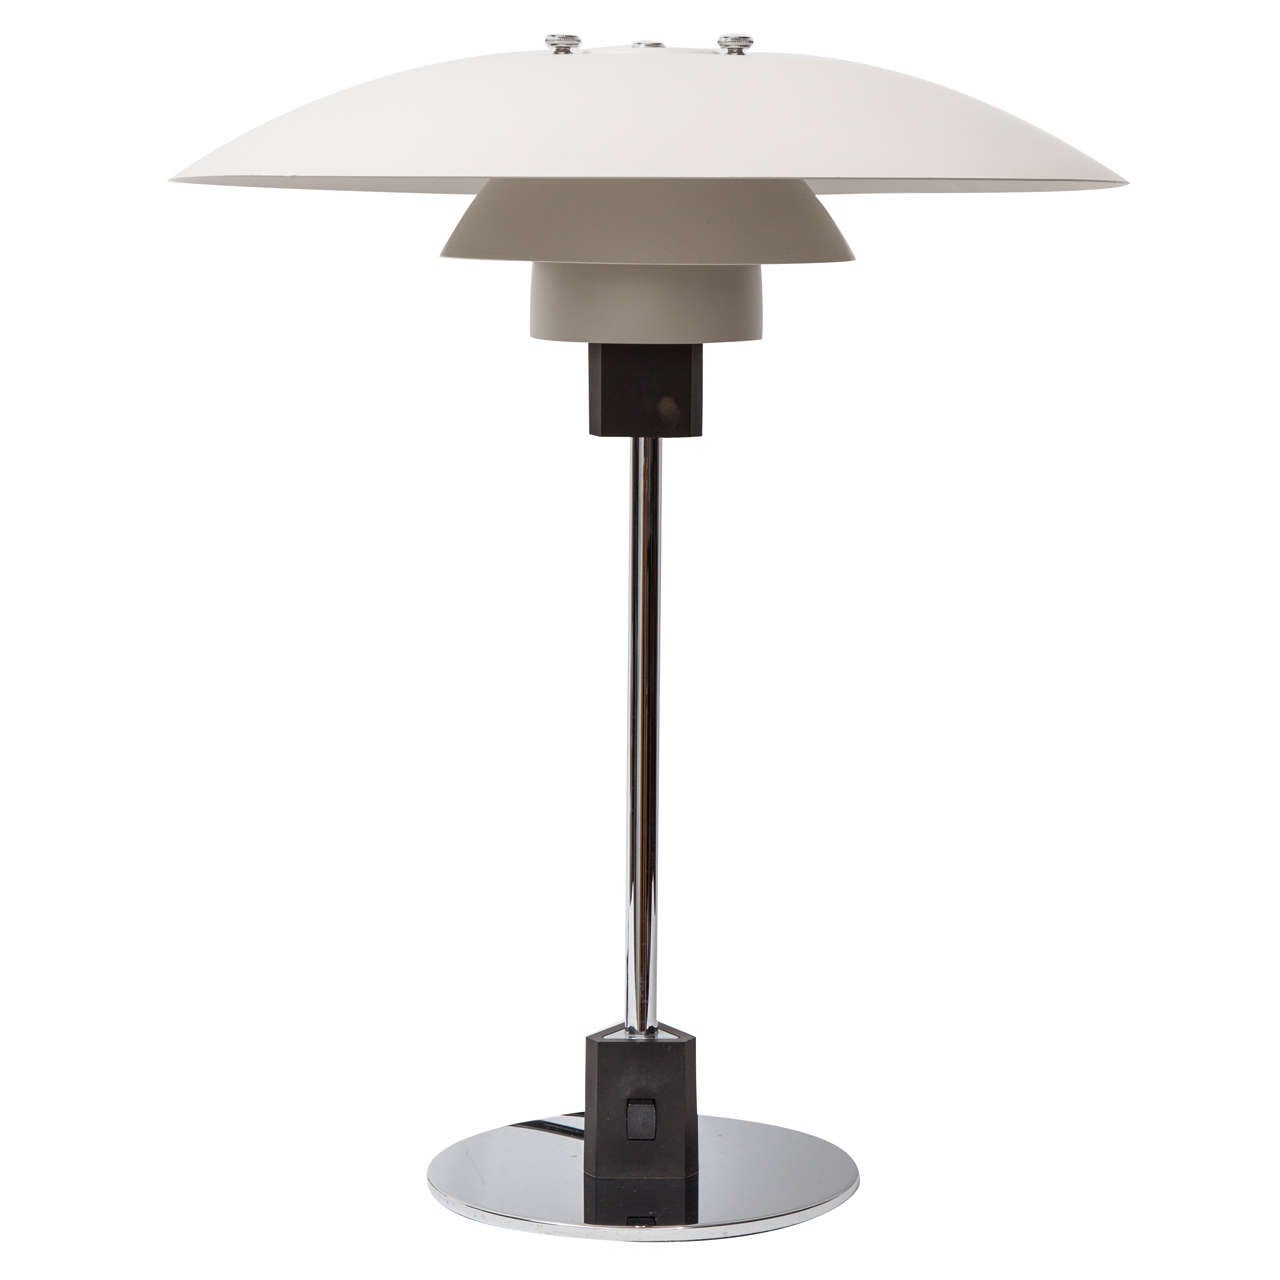 poul henningsen desk lamp at 1stdibs. Black Bedroom Furniture Sets. Home Design Ideas